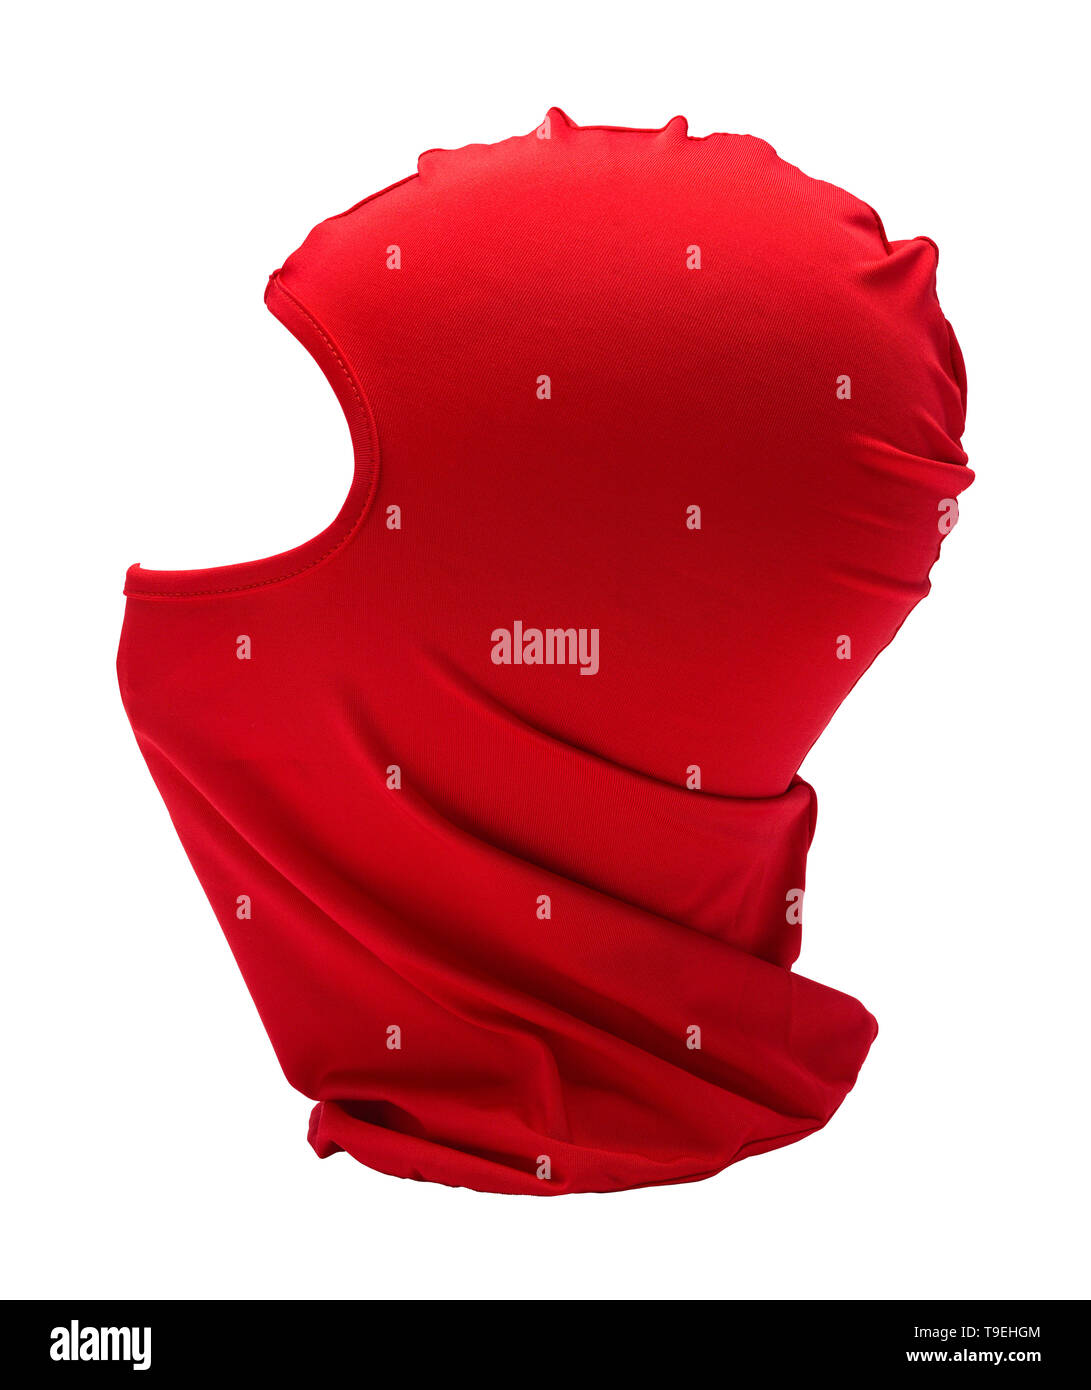 Red Ninja Mask Side View  Isolated on White Background. Stock Photo